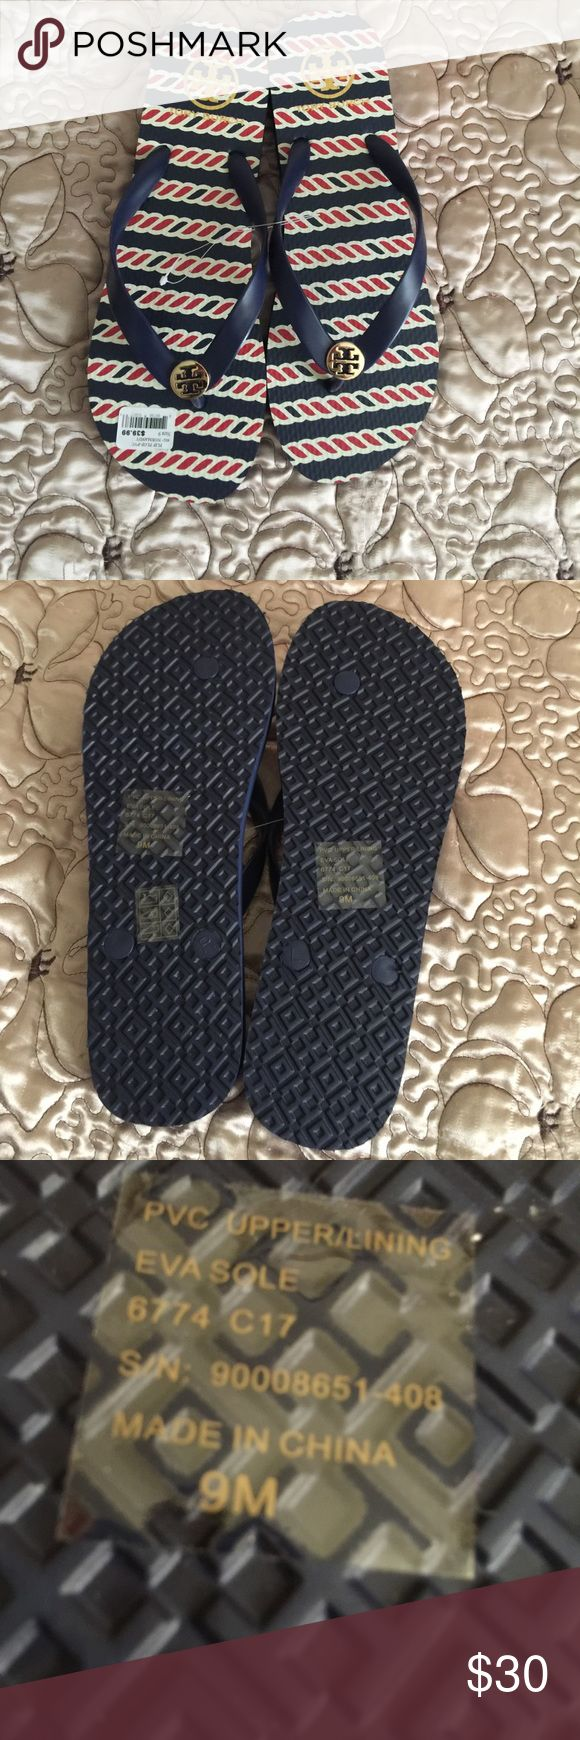 Tory Burch Flip Flops Tory Burch flip flops size 9 great condition Tory Burch Shoes Slippers